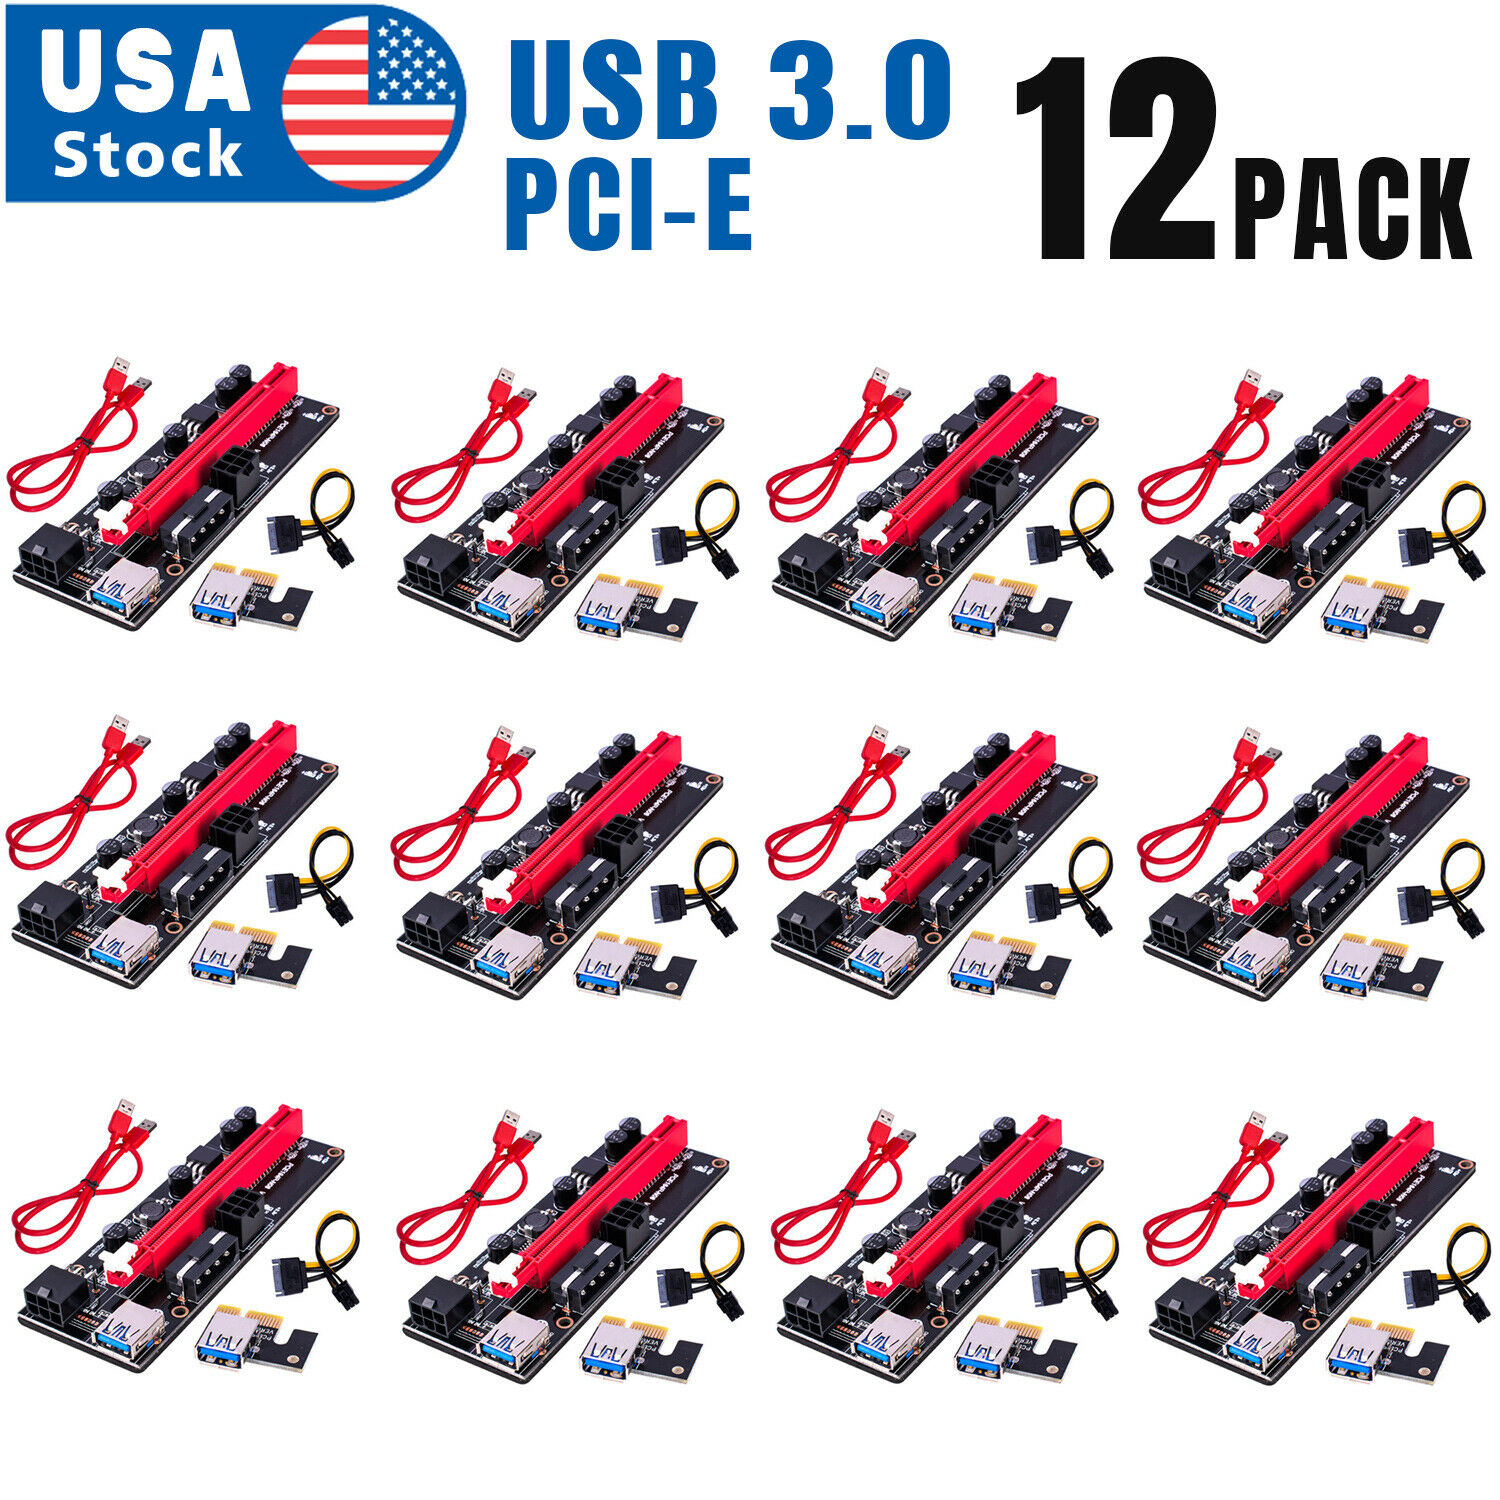 12PACK VER009S PCI-E Riser Card PCIe 1x to 16x USB 3.0 Data Cable Bitcoin Mining Computer Cables & Connectors